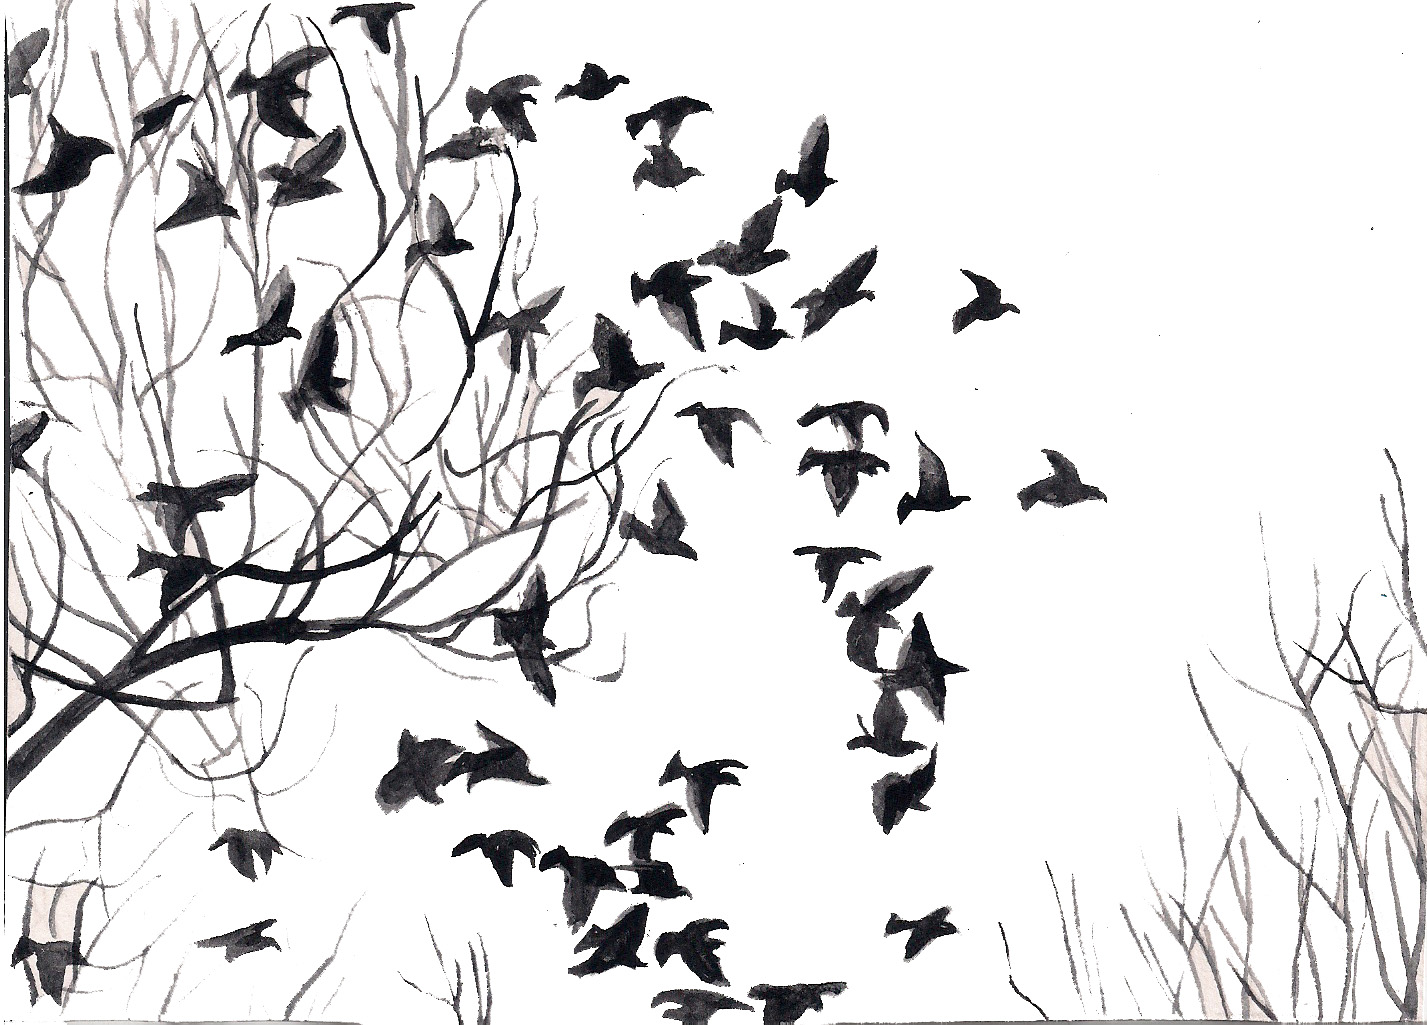 white bird black singles Related searches: bird cages bird cages & houses black bird cages & houses white bird cages & houses red bird cages & houses bird houses bird cages & houses did you find what you were looking for yes no.